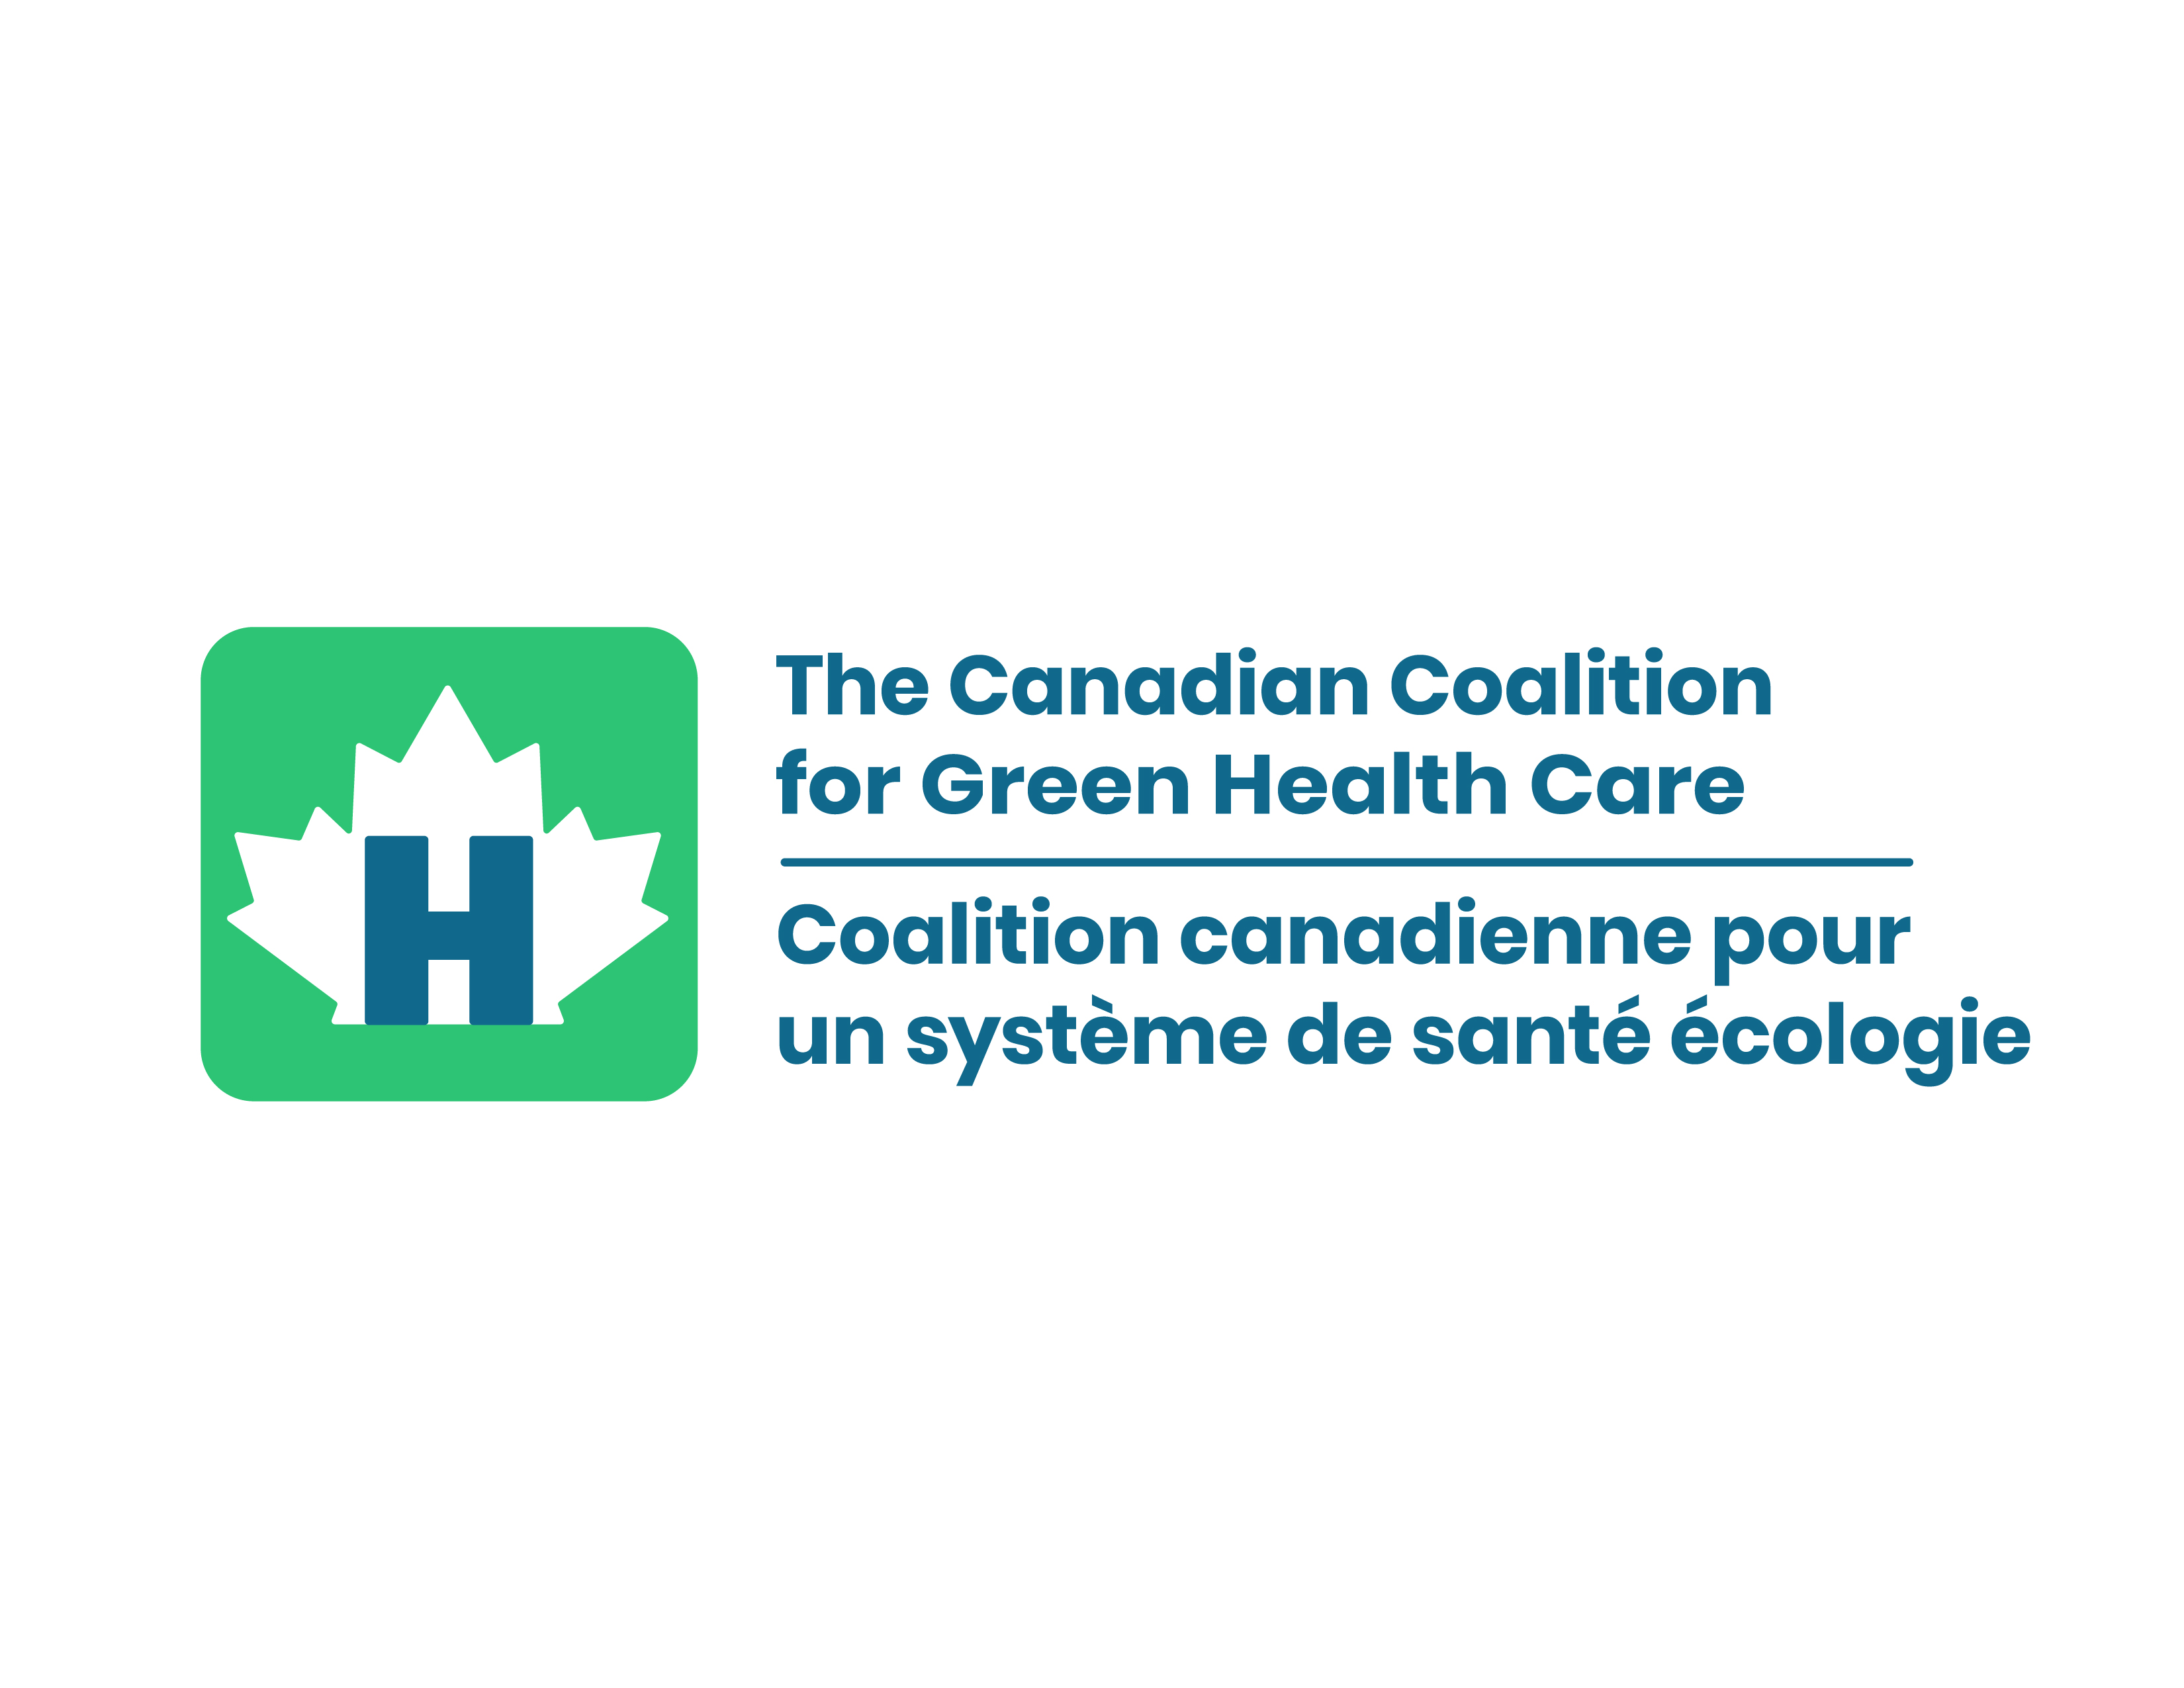 The Canadian Coalition for Green Health Care